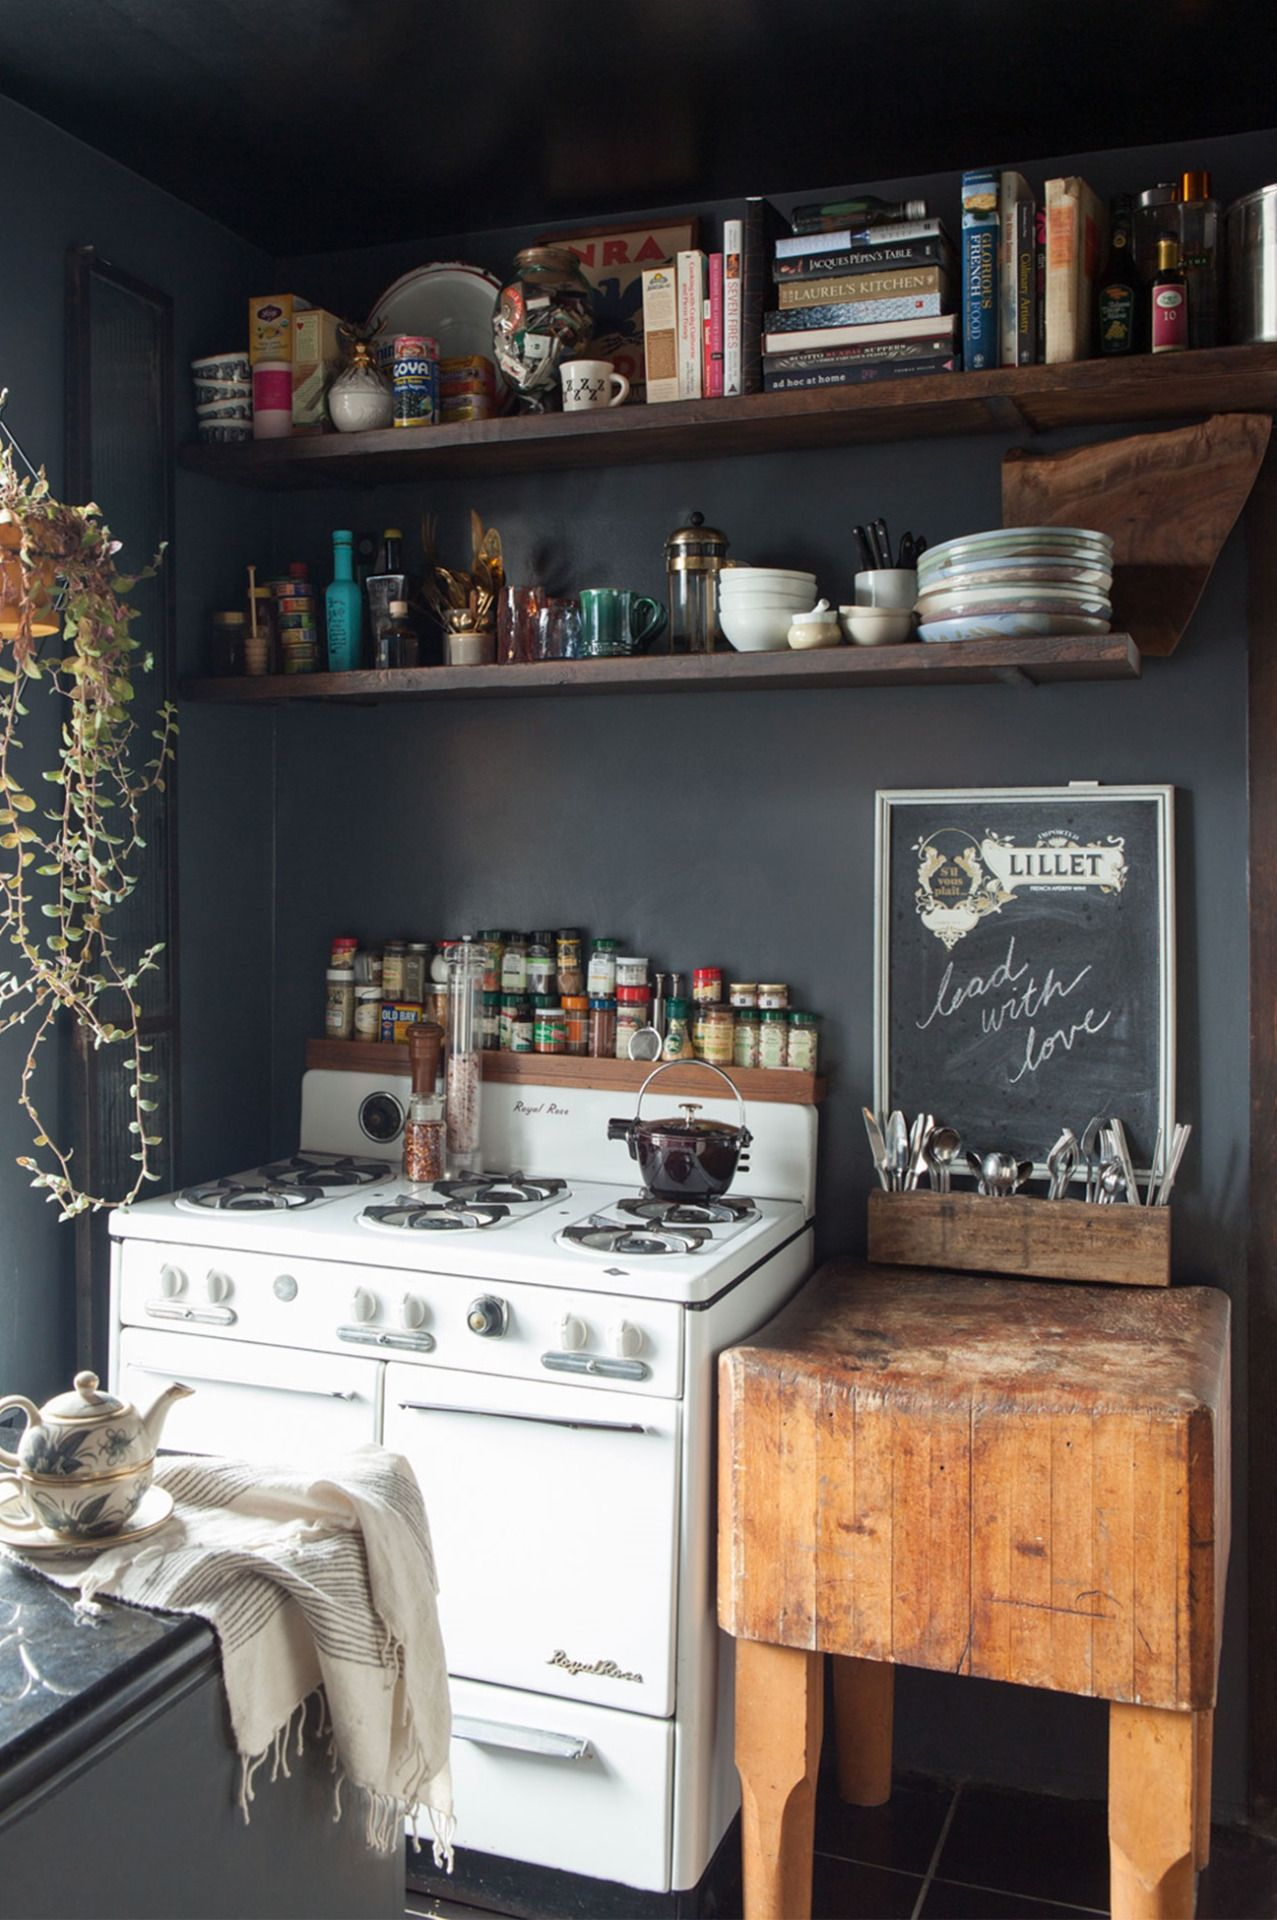 black and white rustic kitchen with boho and vintage style k i t c h e n pinterest rustic on boho chic kitchen table decor id=45110